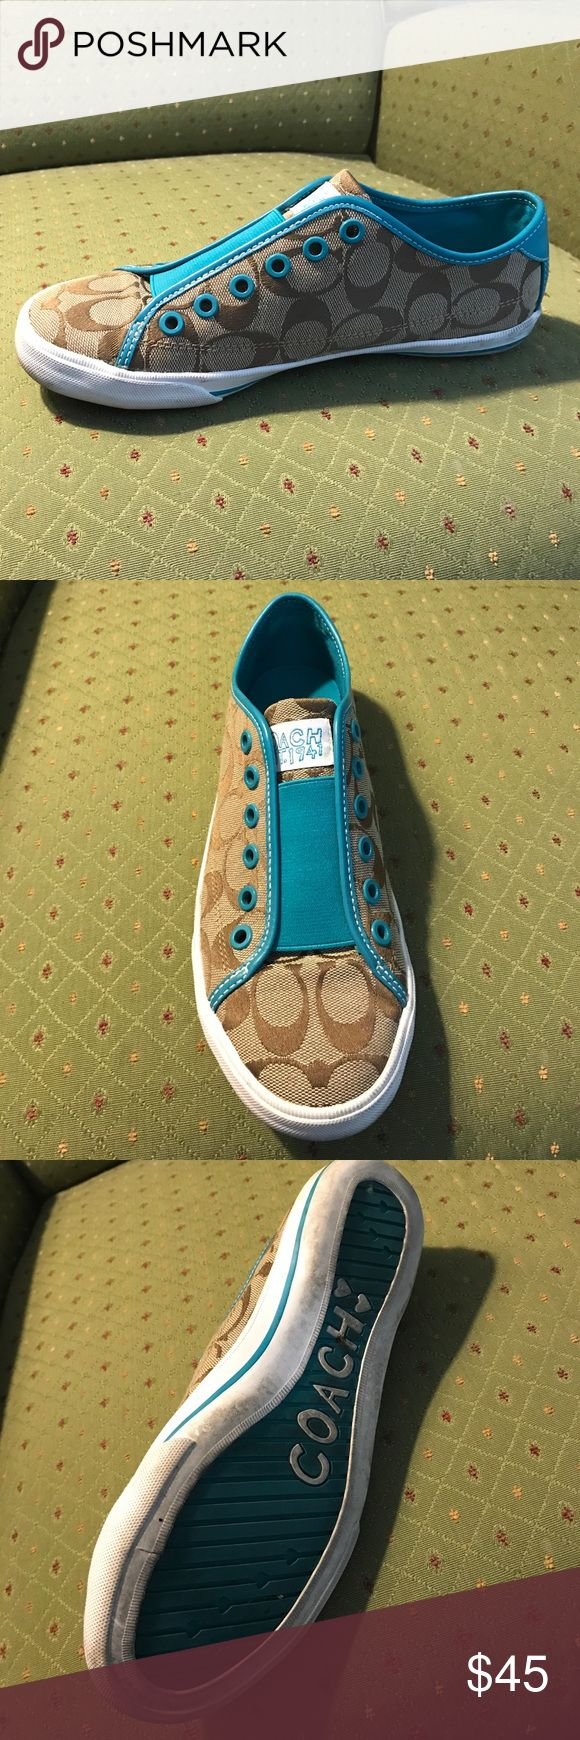 Coach Tennis Shoe - Like New! Brown & turquoise Coach tennis shoe - barely any wear and like new! Coach Shoes Sneakers